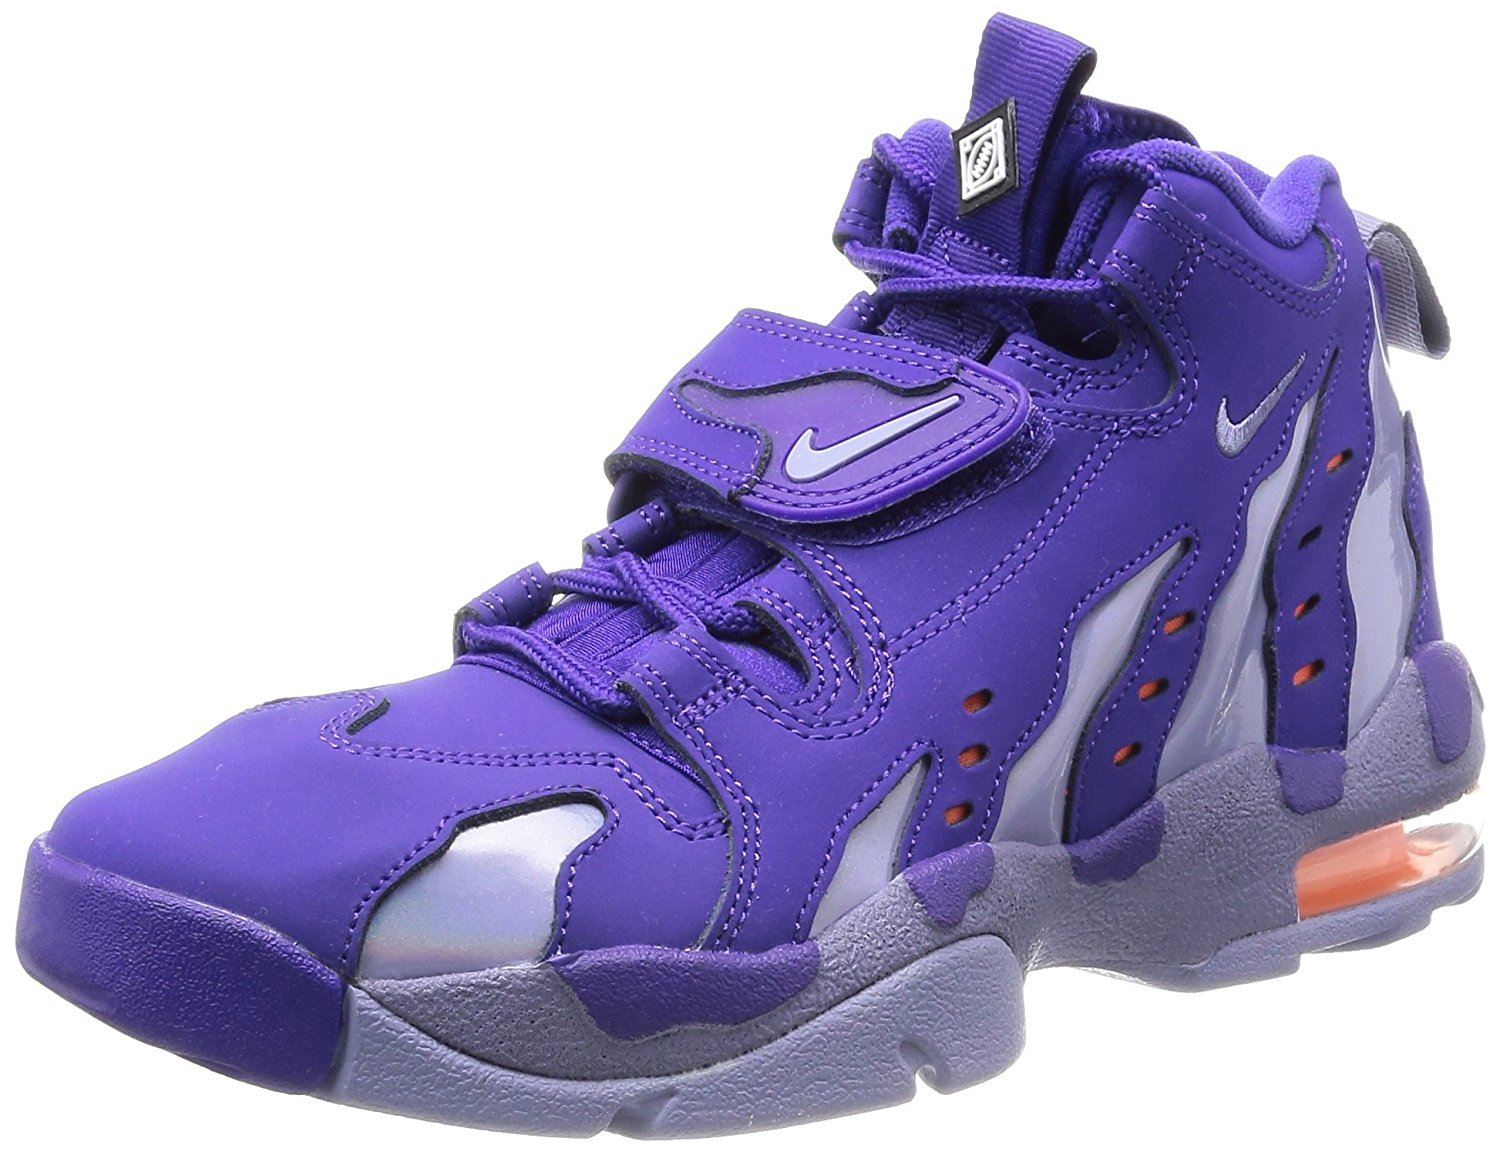 5d1b2138df99 Get Quotations · NIKE AIR DT MAX  96 Men s Basketball Shoes Sneakers  316408-500